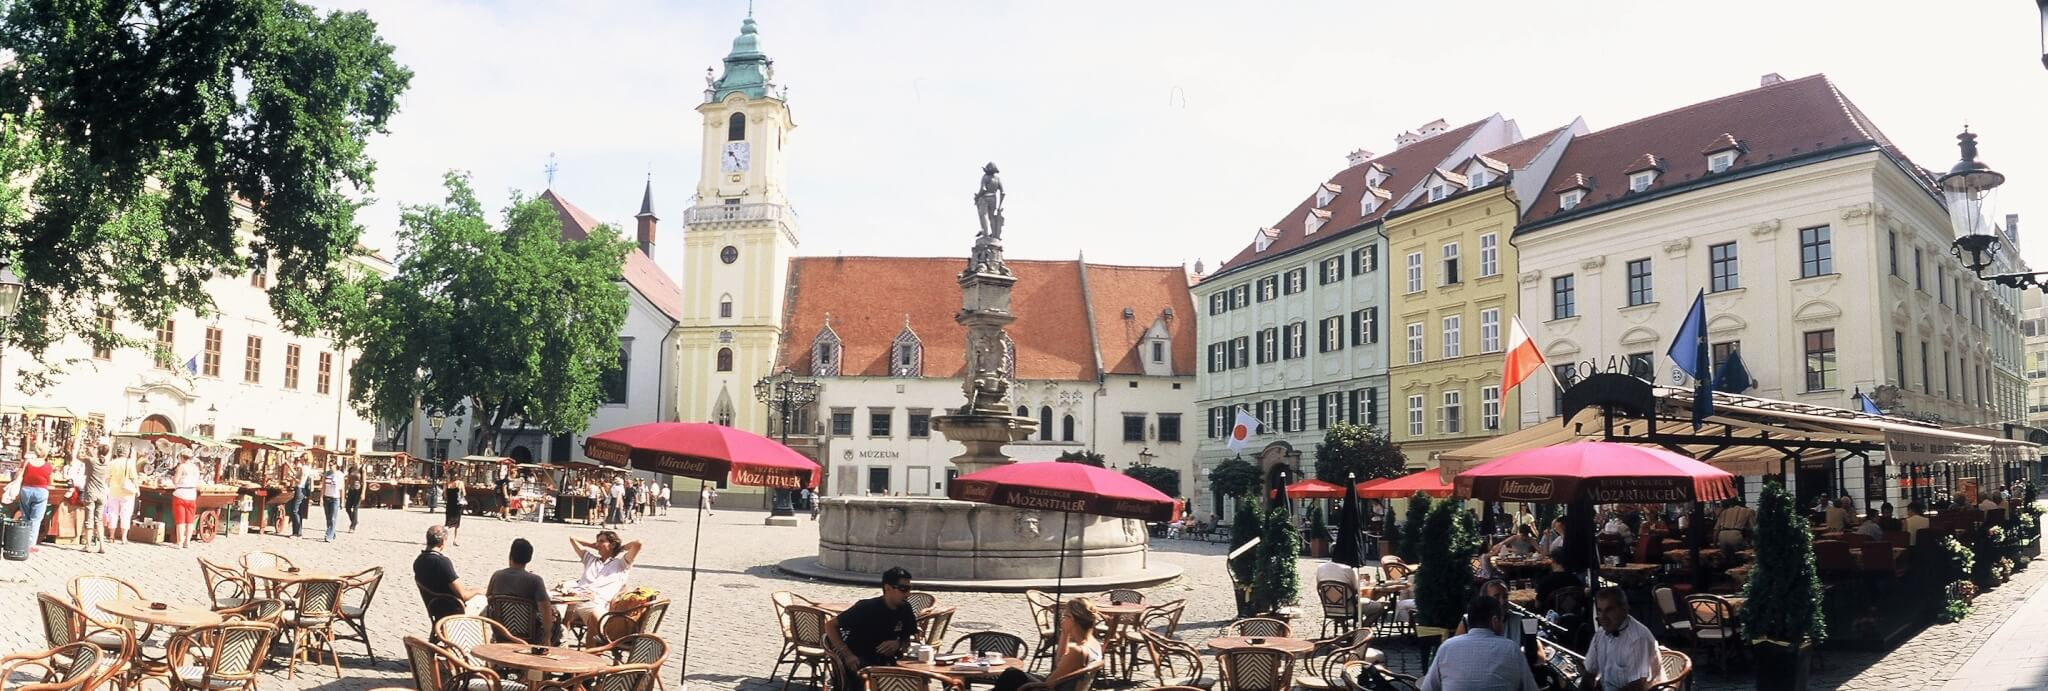 Bratislava in Summer - Old Town Hall